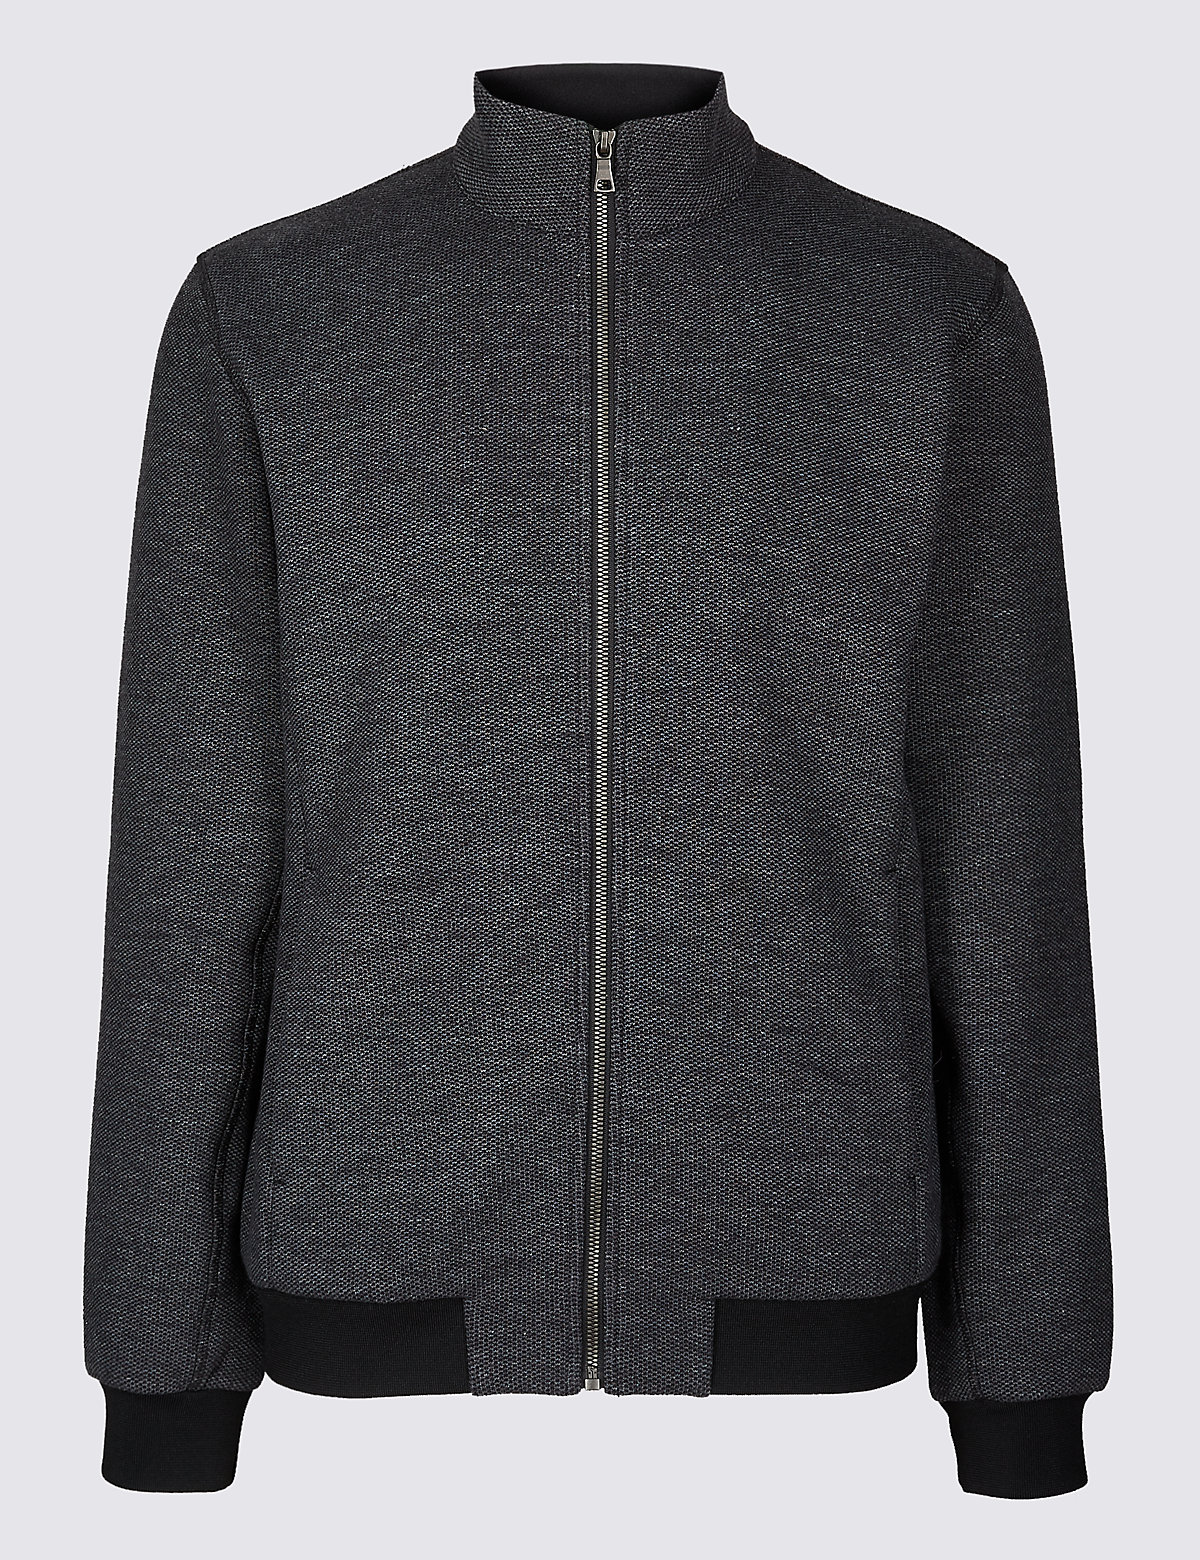 Marks & Spencer Charcoal Mix Cotton Rich Funnel Neck Zip Through